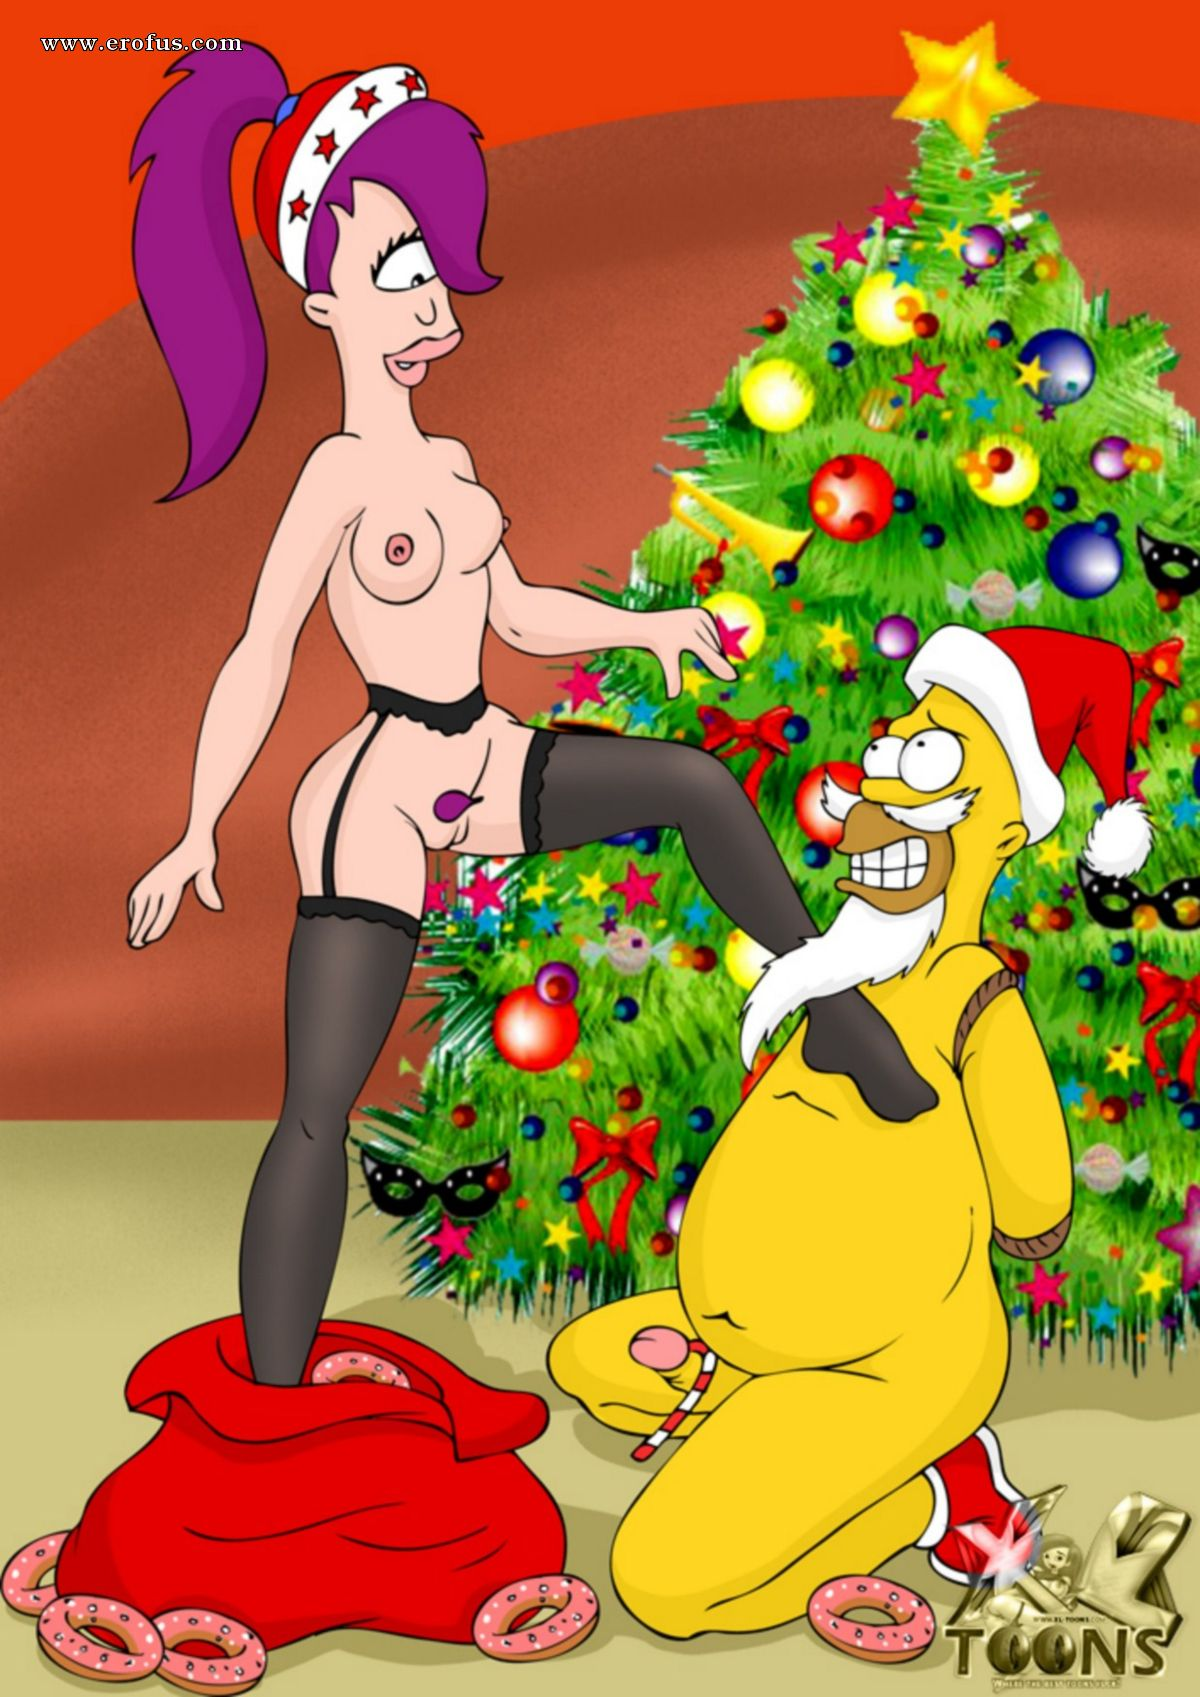 Congratulate, cartoons christmas sex sorry, that